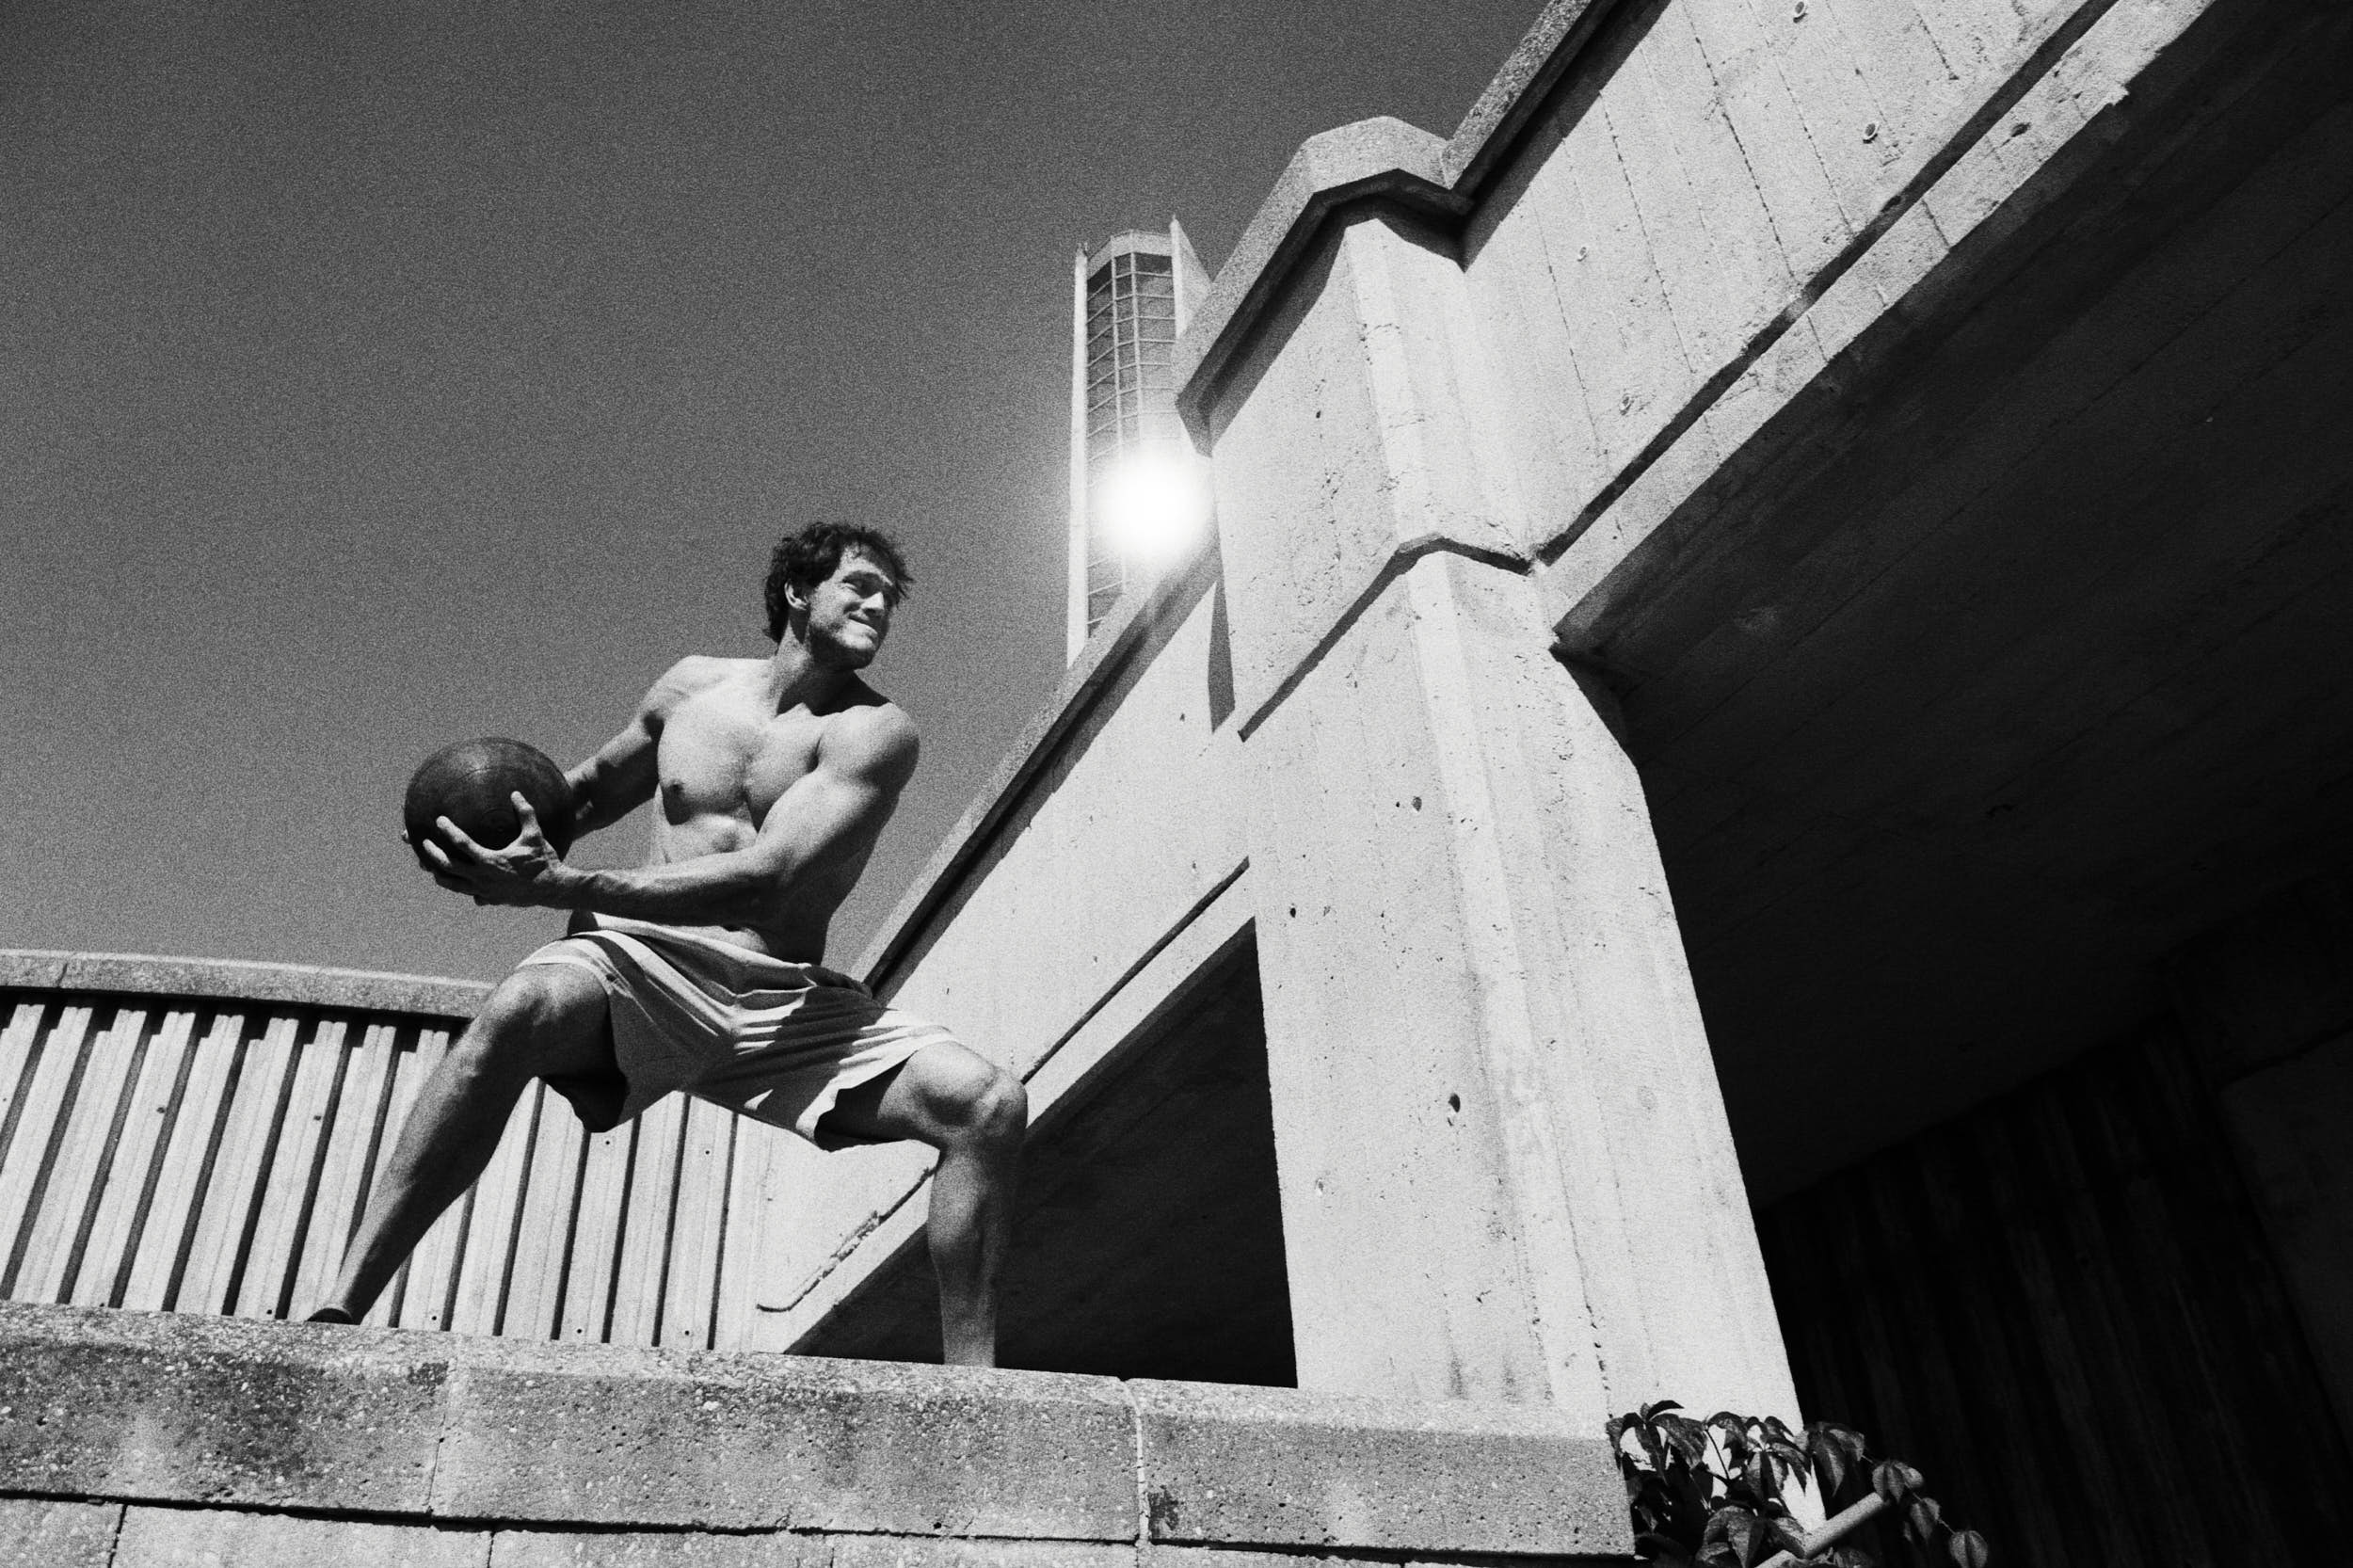 Action sports photography: Crossfit athlete on a brutalist staircase preparing for a work out with a medicine ball.